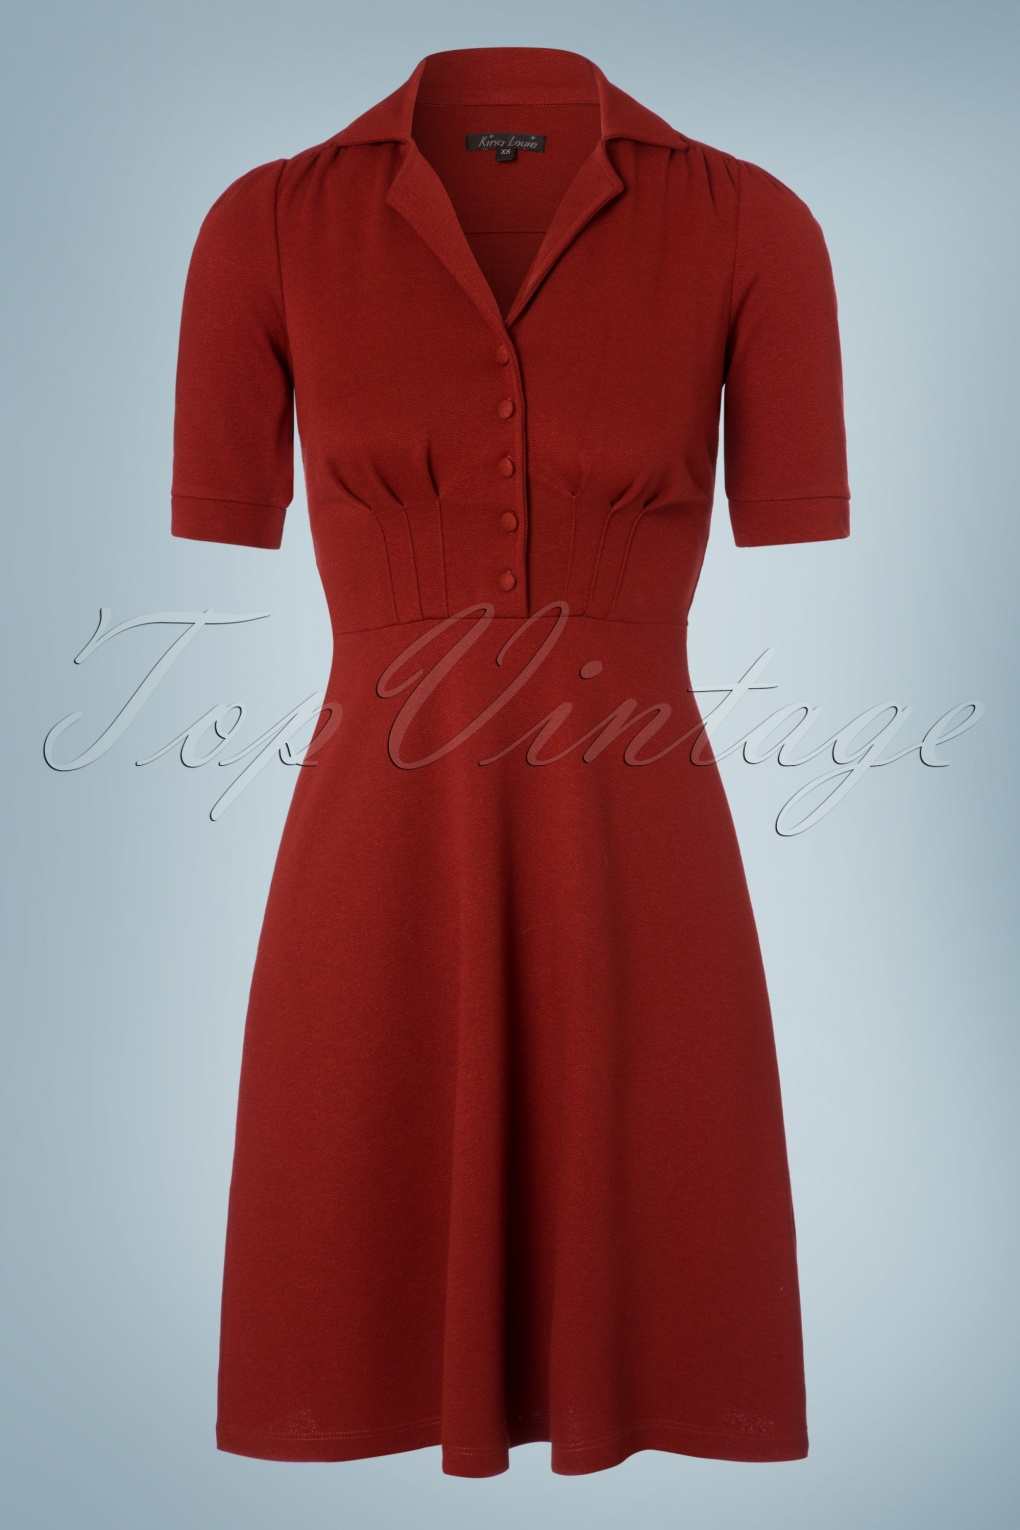 1940s Style Dresses and Clothing 40s Milano Diner Crepe Dress in Rio Red £96.49 AT vintagedancer.com